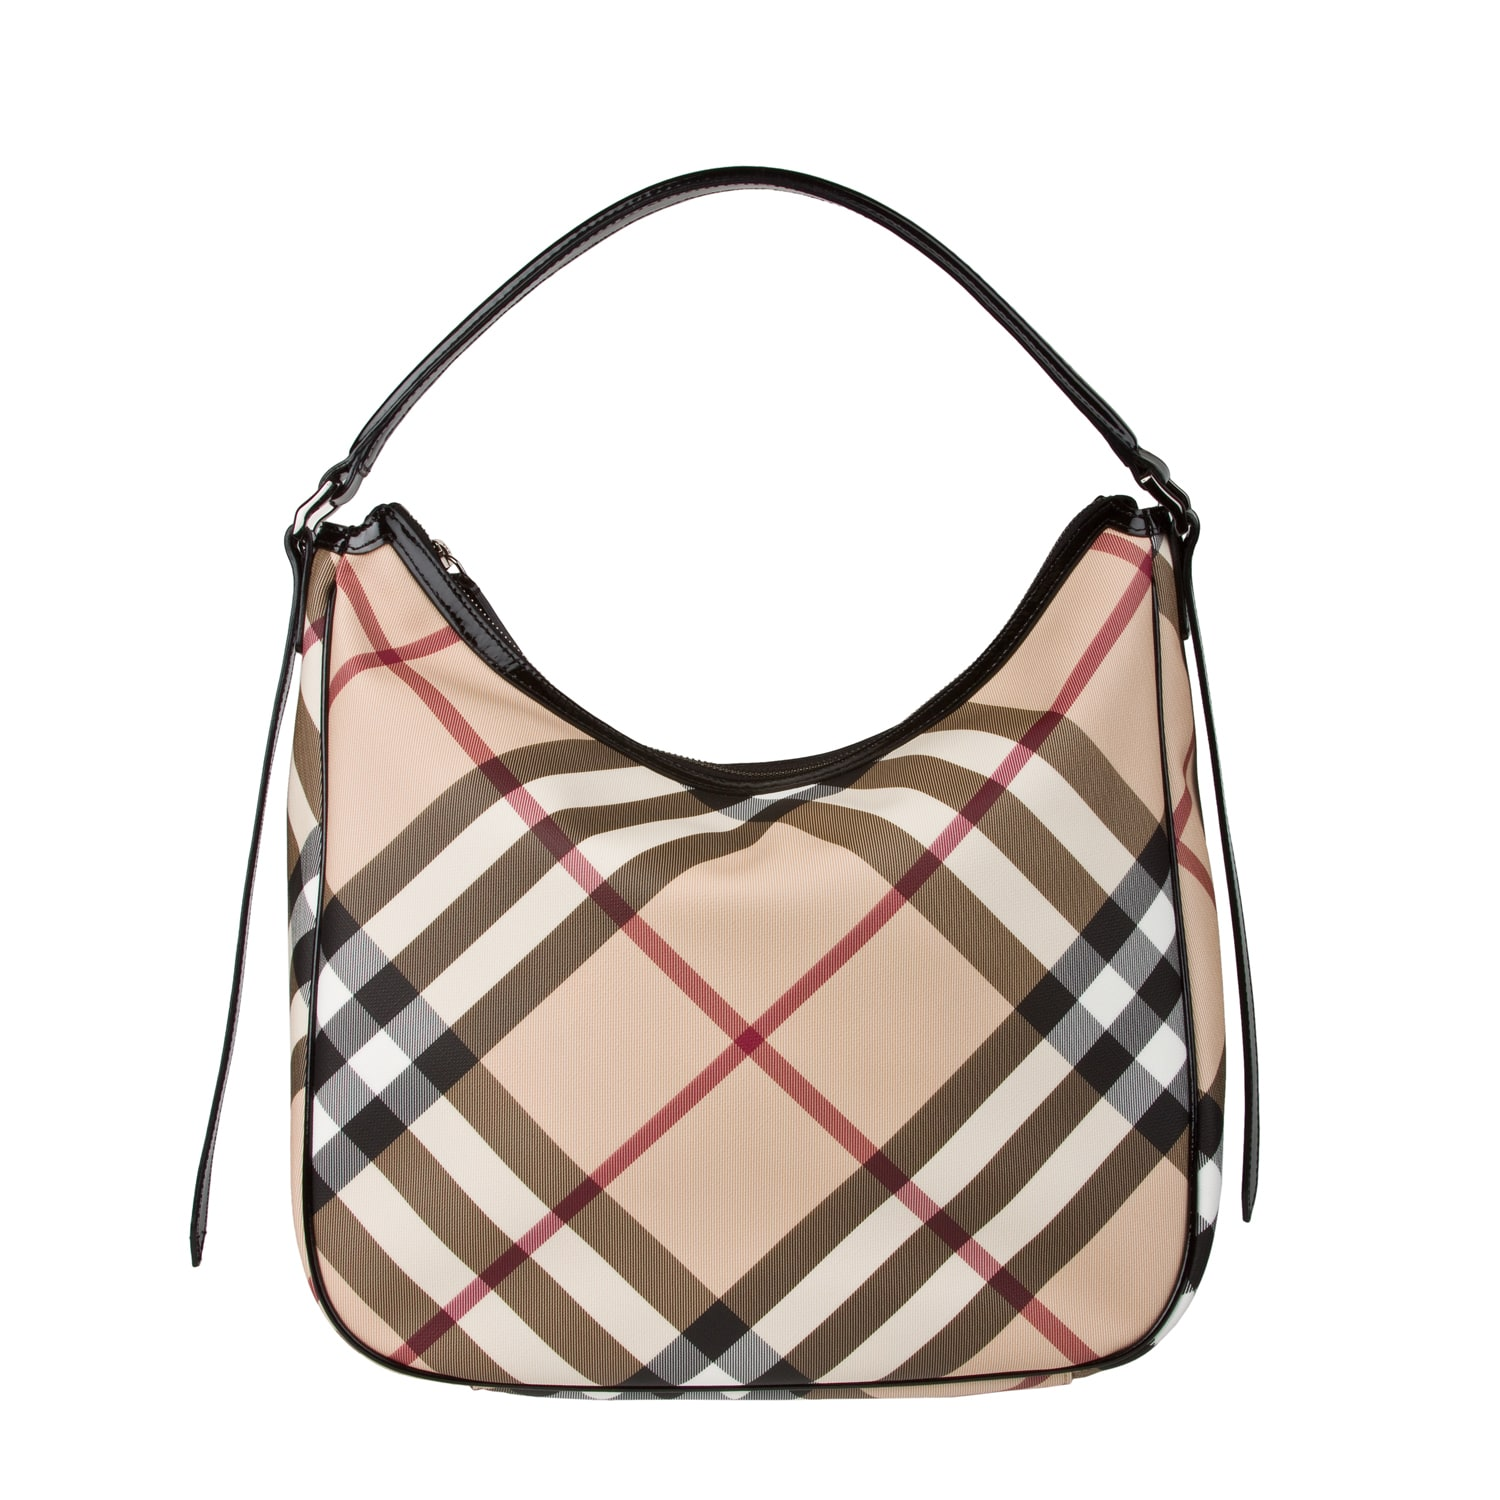 Burberry Medium Nova Check Hobo Bag